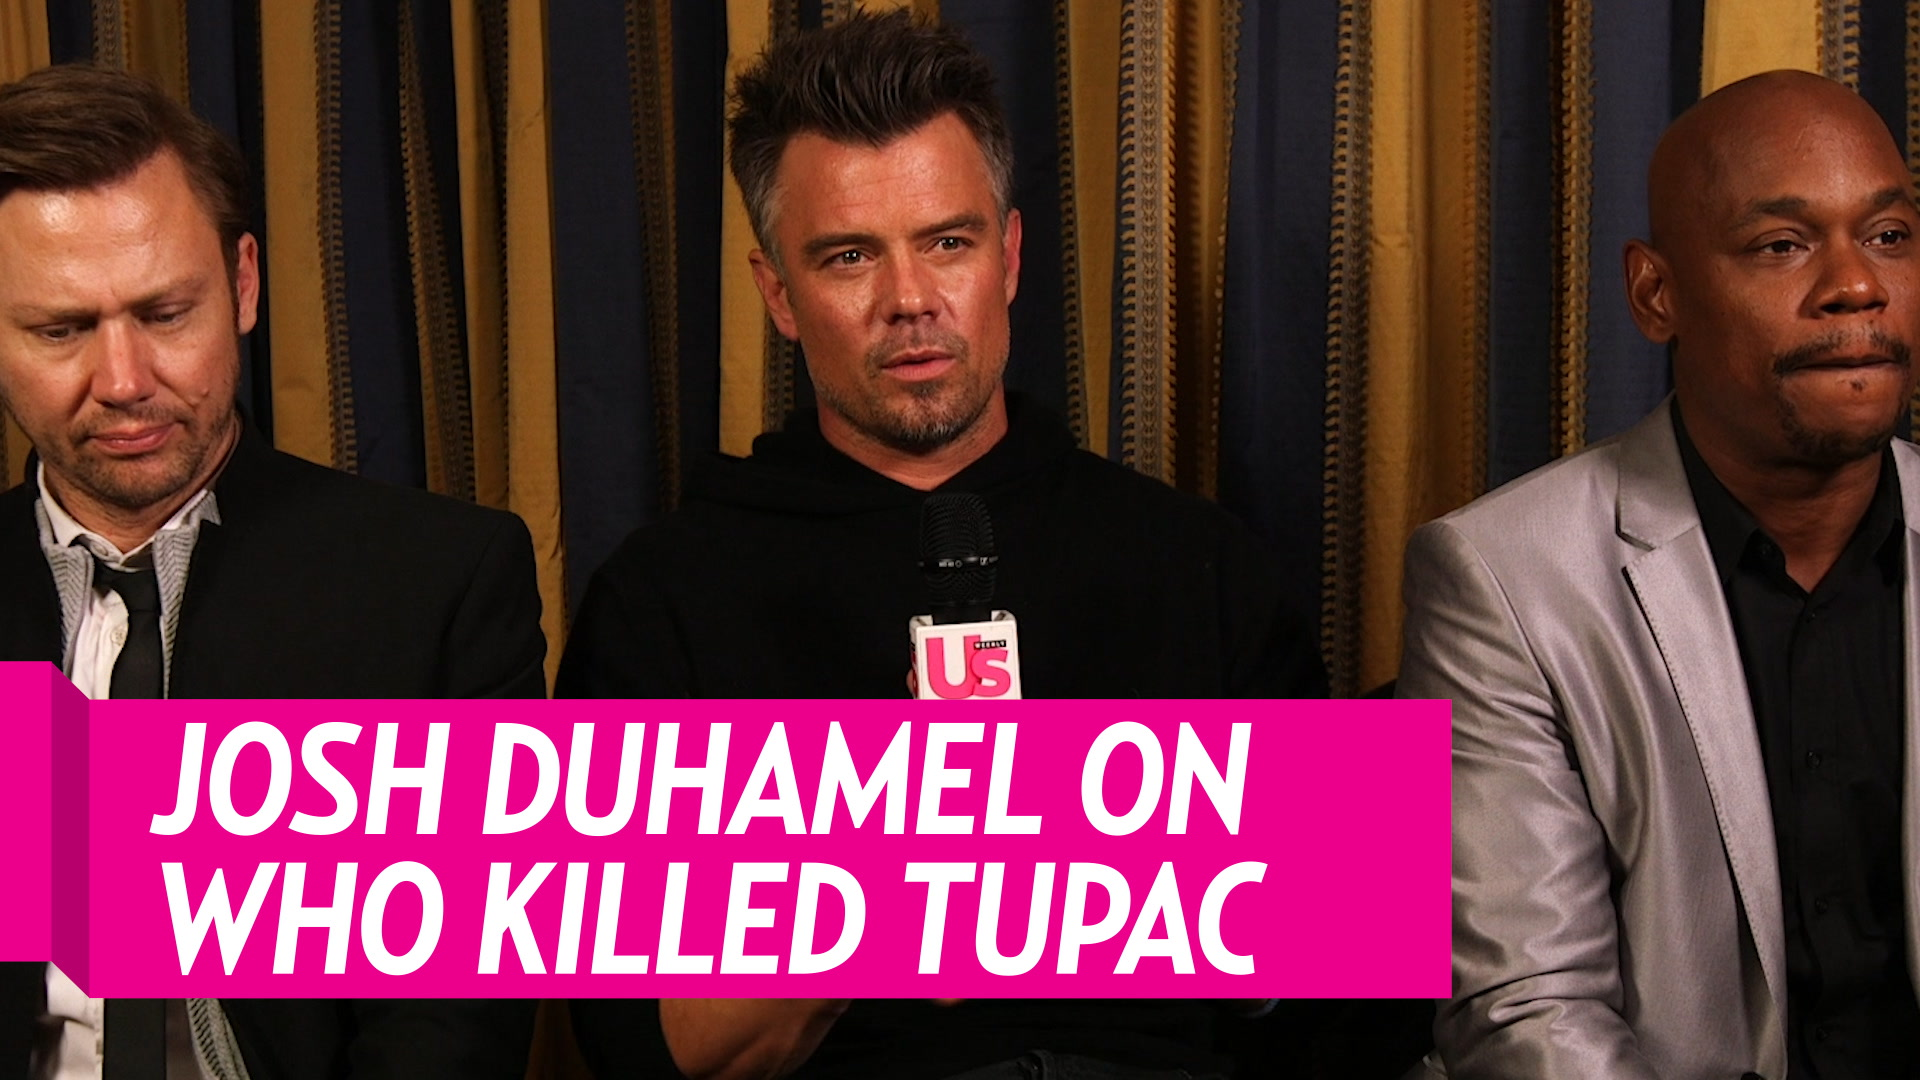 Josh Duhamel On Tupac And Biggie's Murders - 'We All Know What Happened'